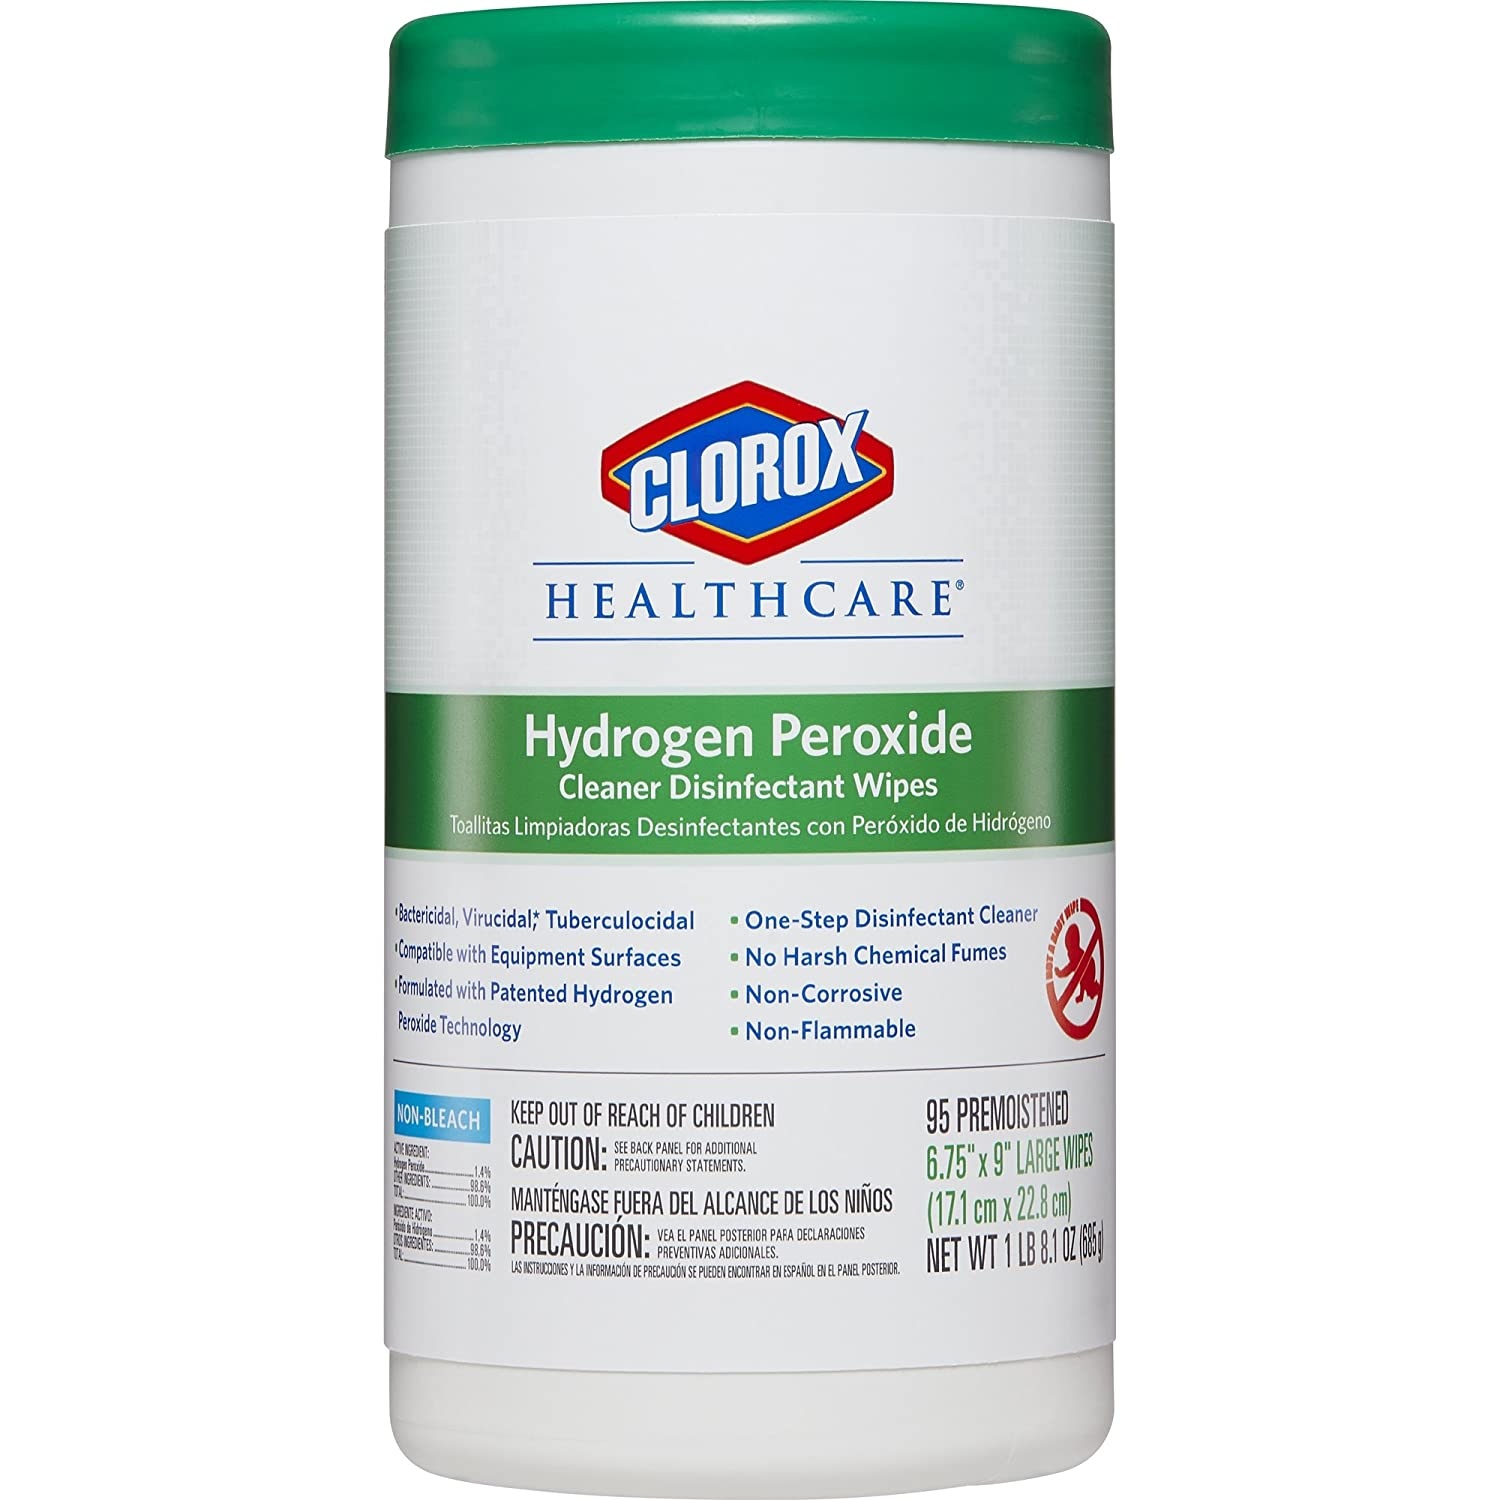 Amazon.com: Clorox Healthcare Hydrogen Peroxide Cleaner Disinfectant Wipes, 95 Count Canister (Pack of 6): Industrial & Scientific